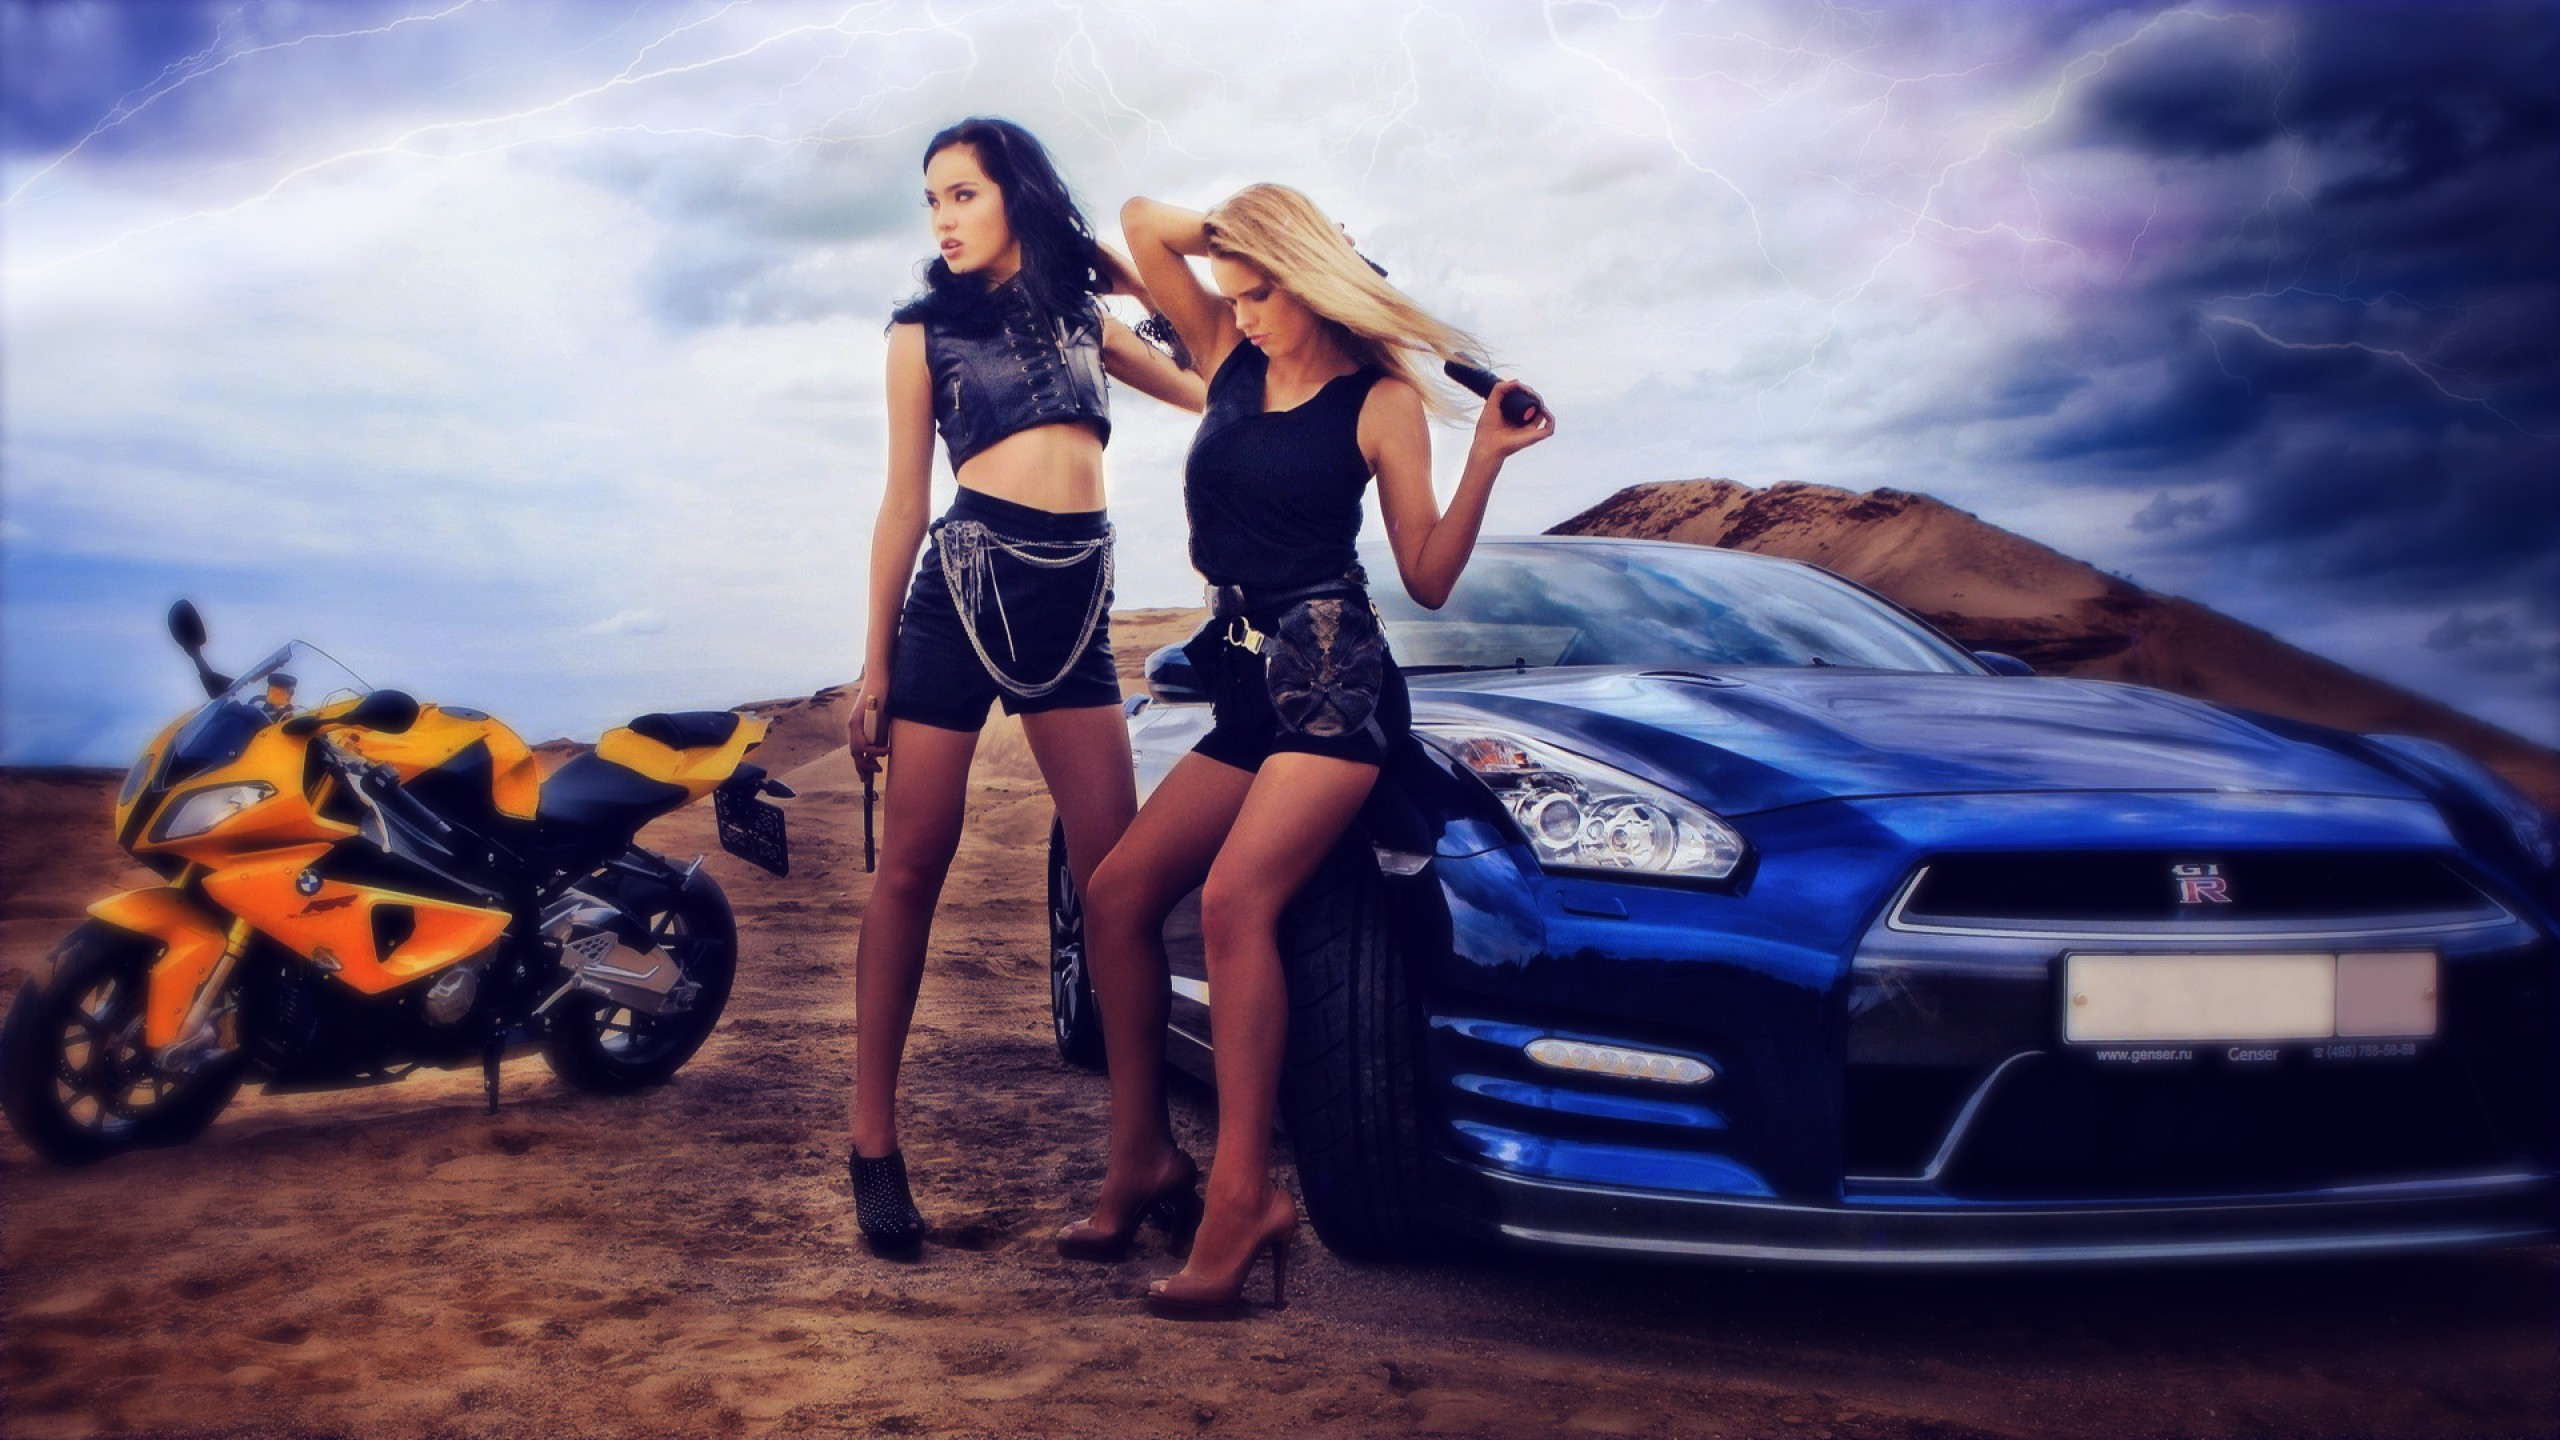 Lepotice i Zveri - Page 5 Sexy-Cars-and-Girls-Wallpaper-and-Pictures-23